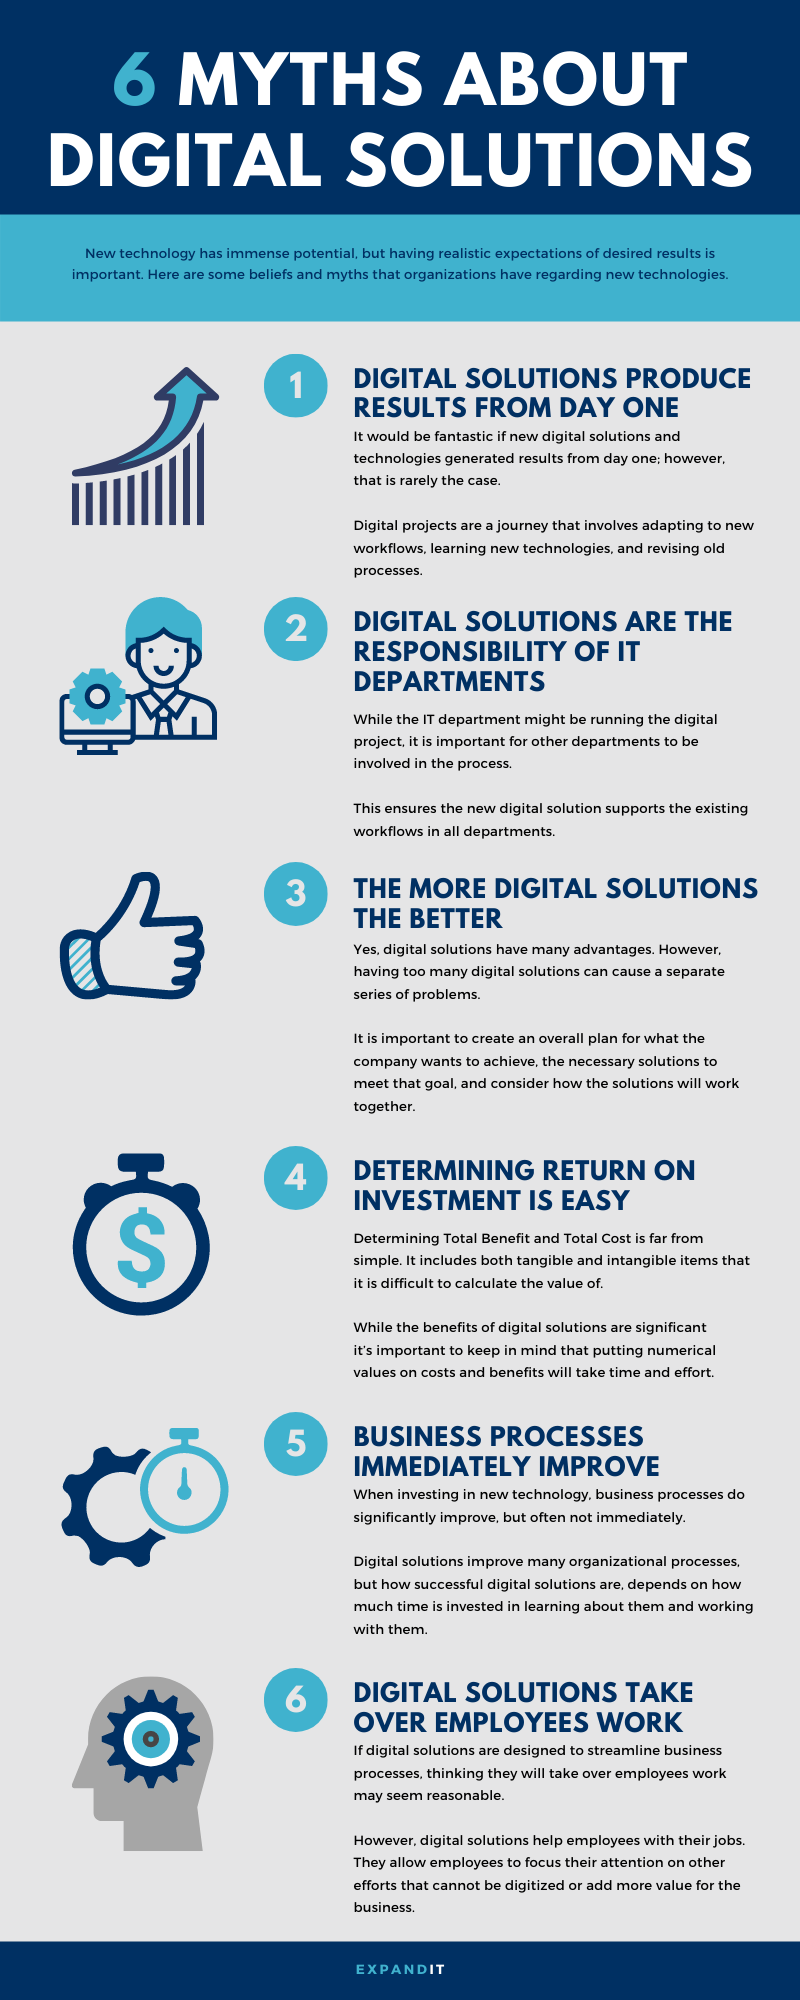 6 Myths About Digital Solutions infographic